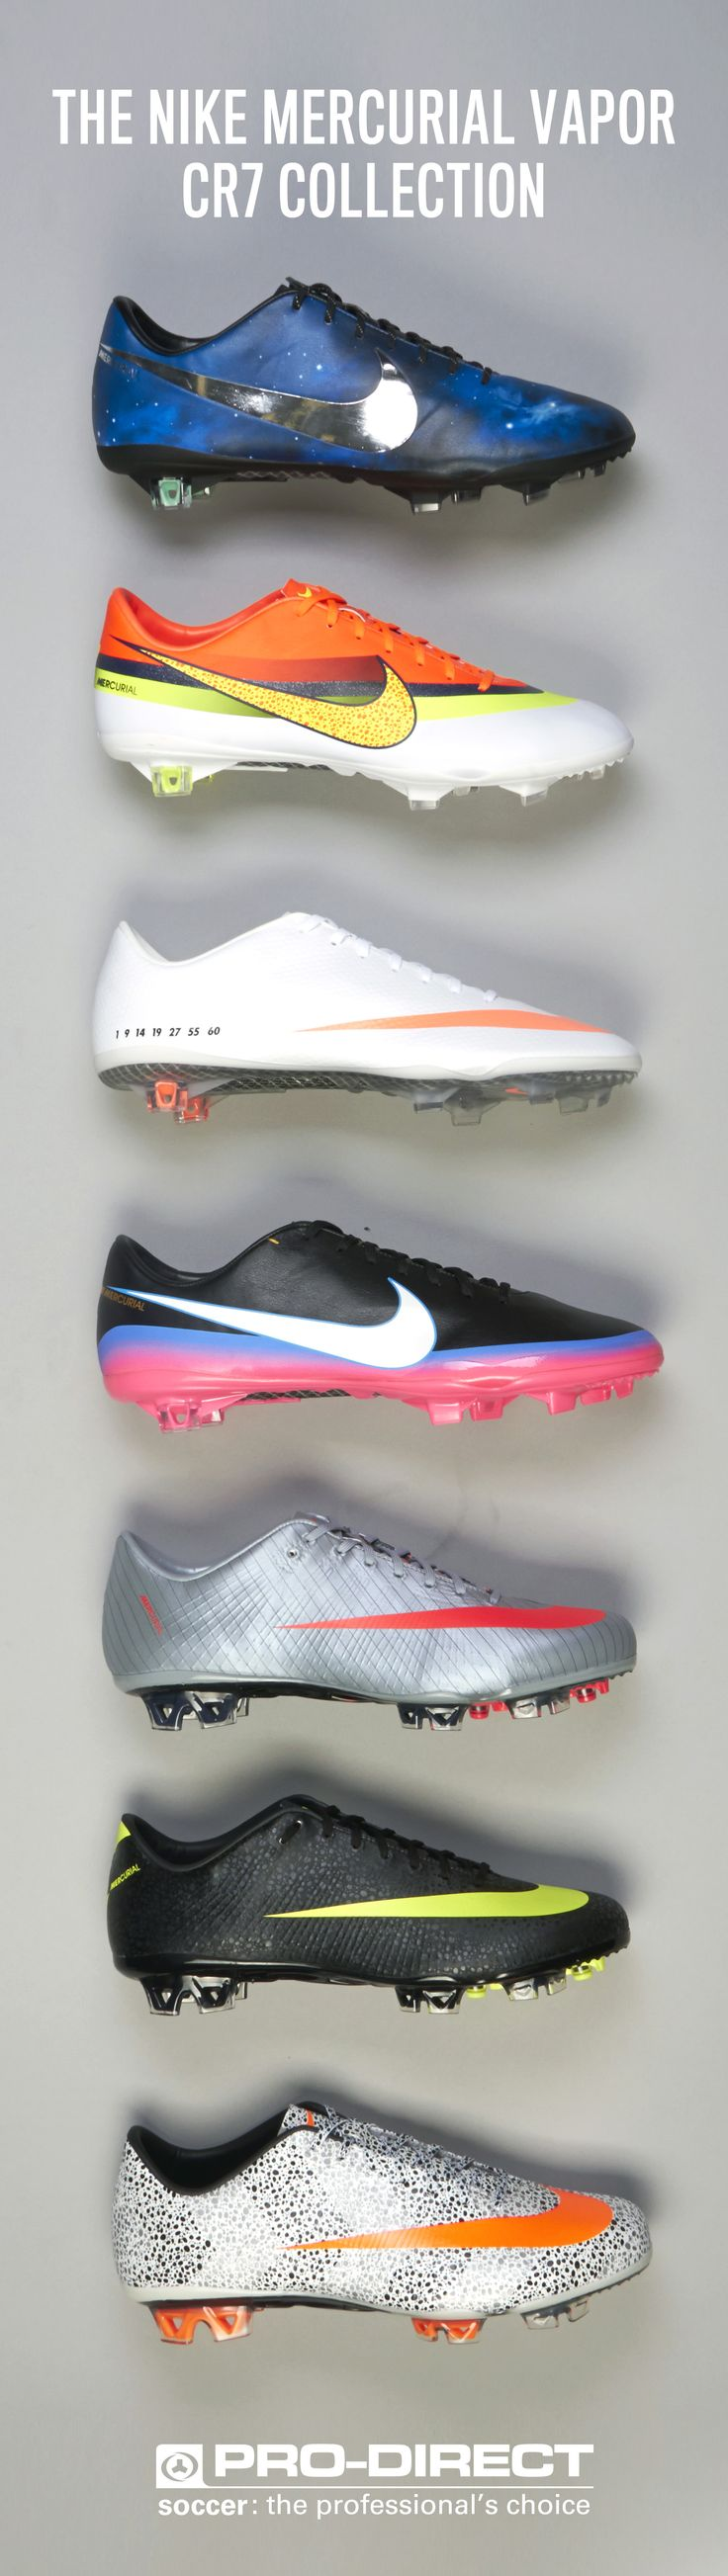 I want the CR7 Galaxies! A look back through the Entire Nike CR7 collection  http://www.prodirectsoccer.com/lists/nike-football-boots-speed.aspx